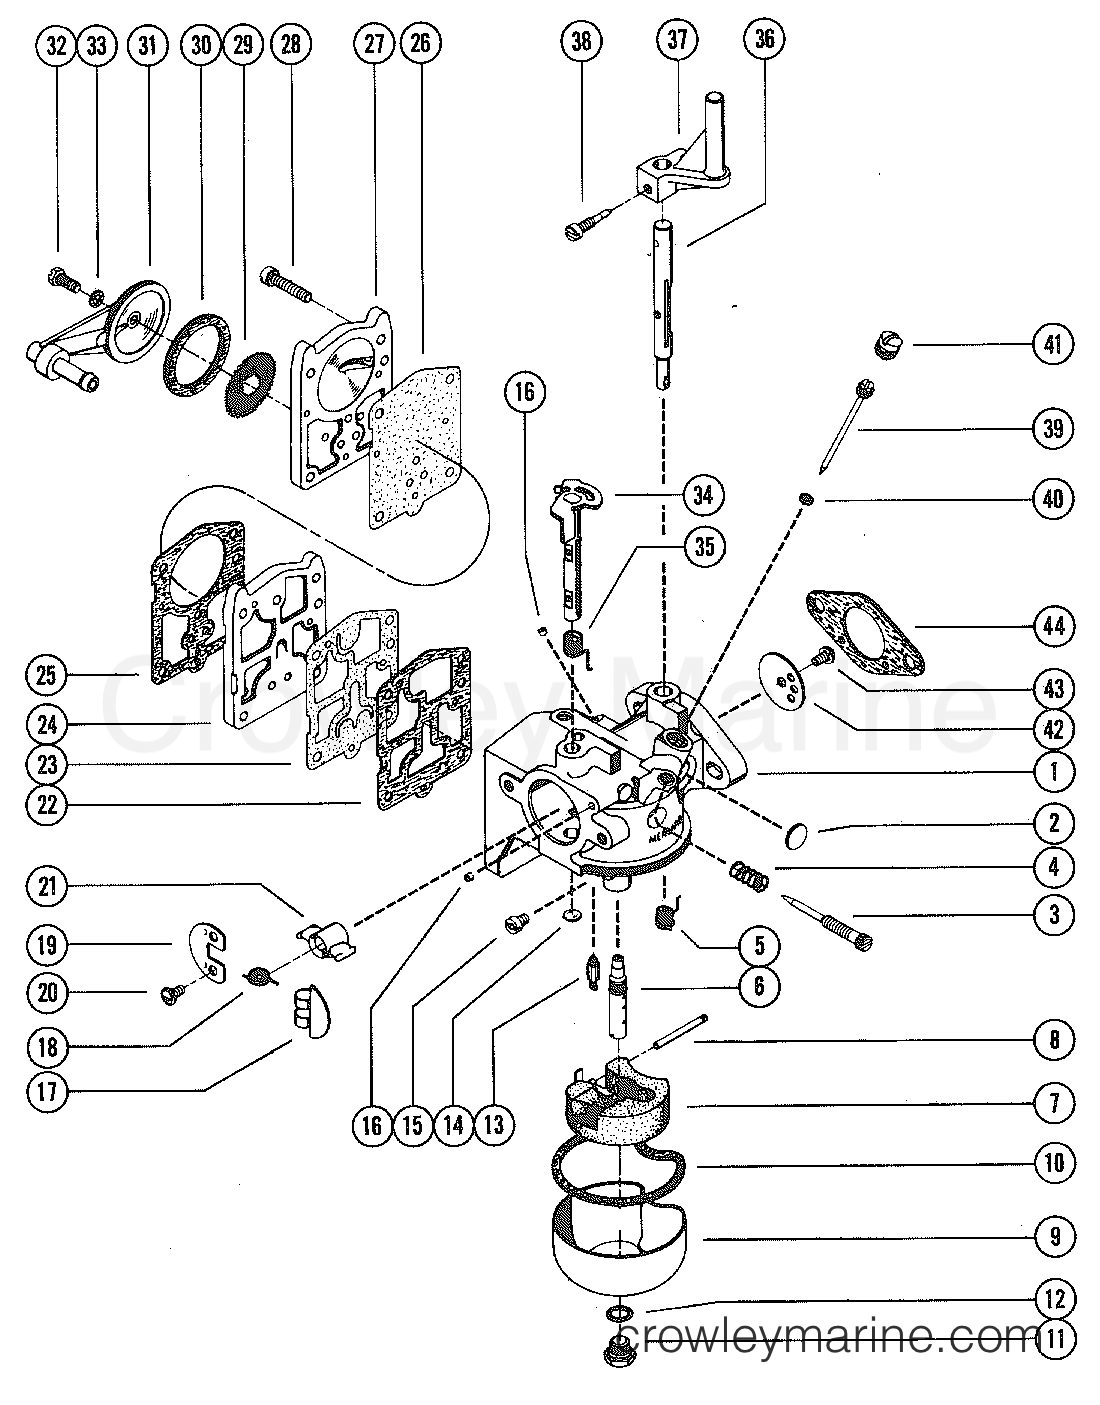 1979 mercury 150 hp outboard wiring diagram for solar battery charger panel series box motor parts canada impremedia